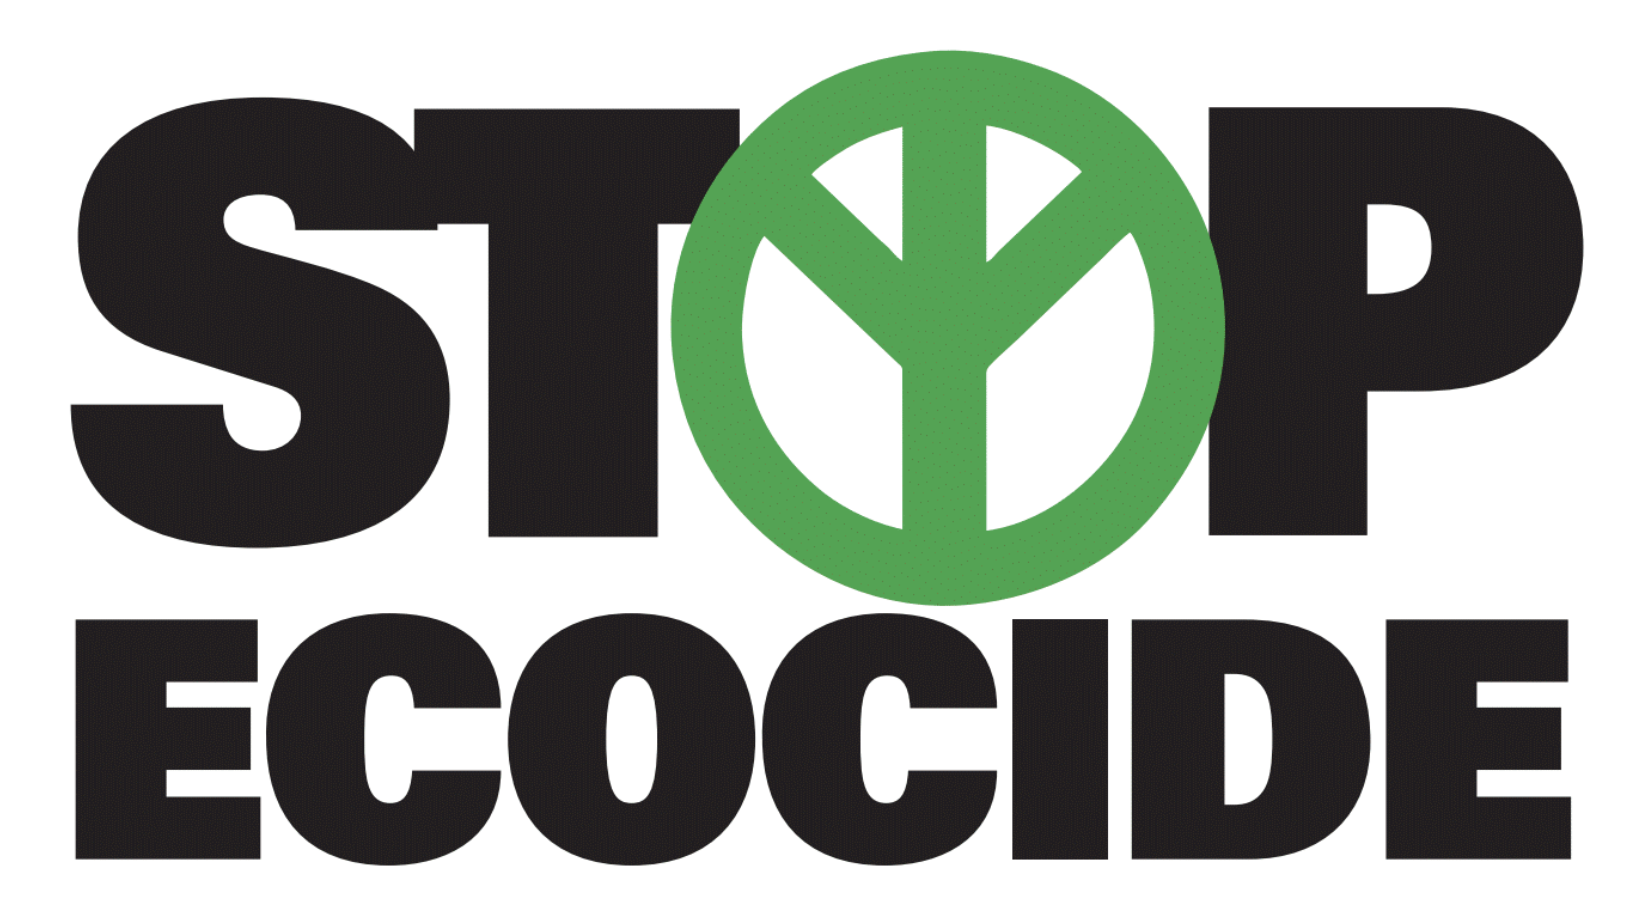 www.stopecocide.earth